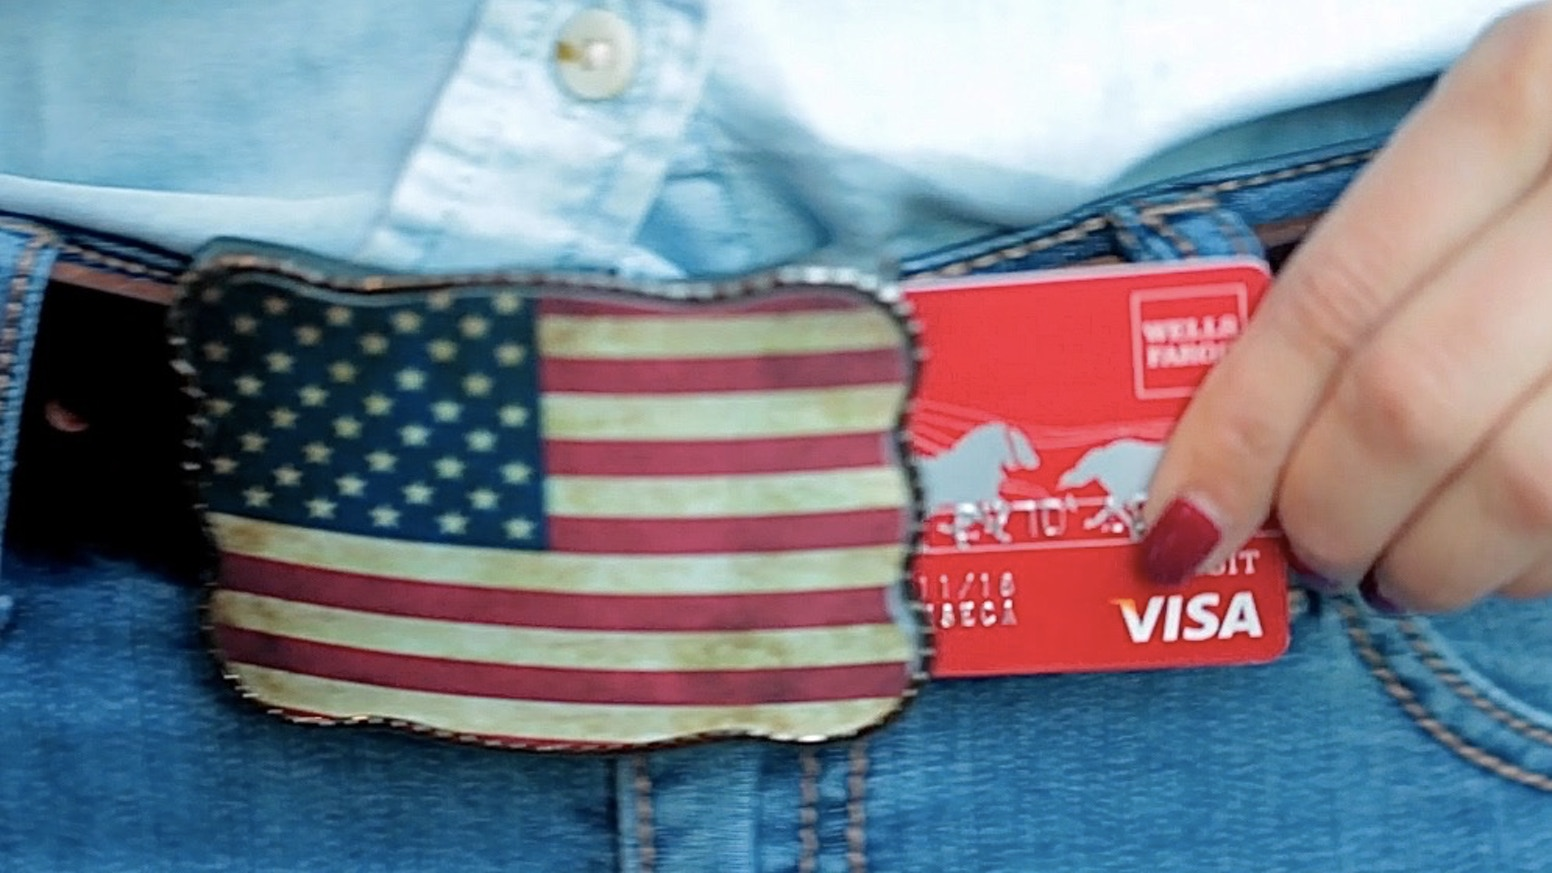 From now on...this is your wallet. Wallet Buckle stores up to 5 credit cards & ID's - Never lose your wallet & simplify your life!